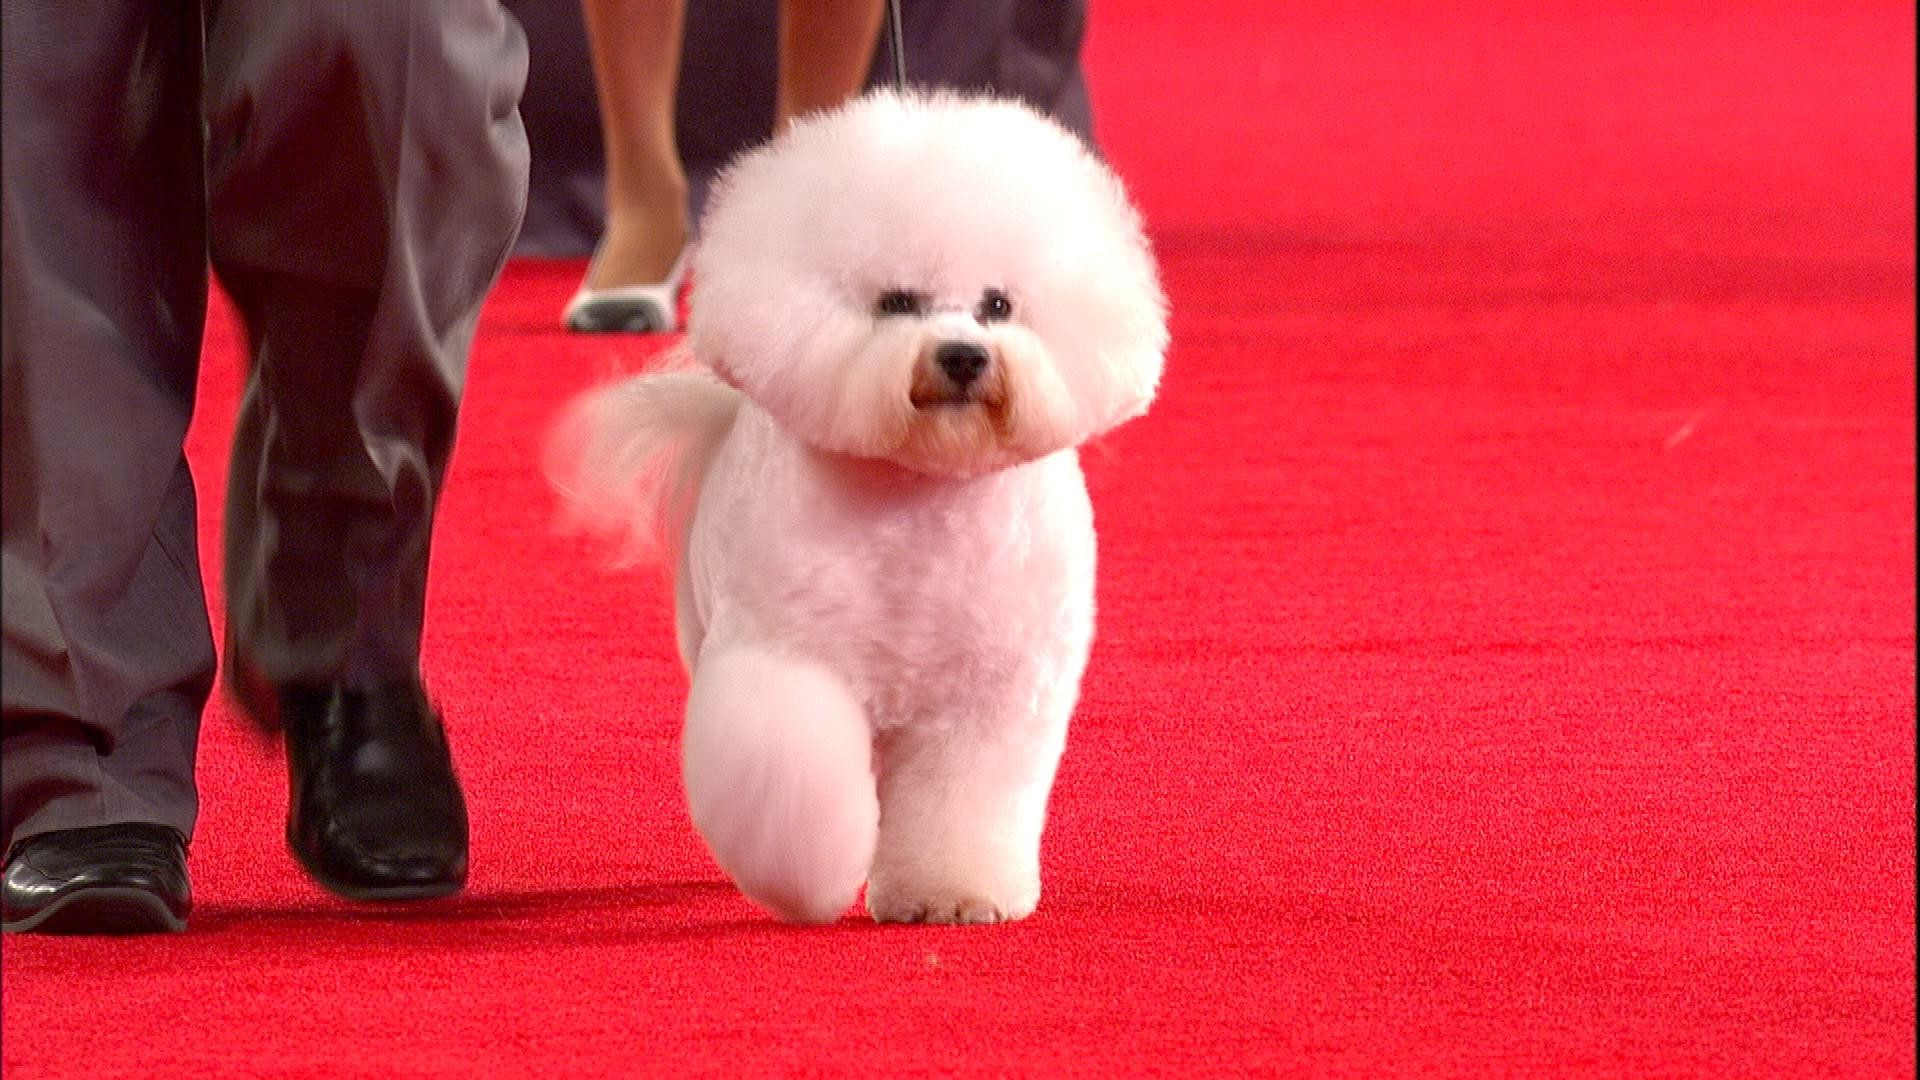 beverly hills dog show bichon frise 2018 non sporting group nbc sports